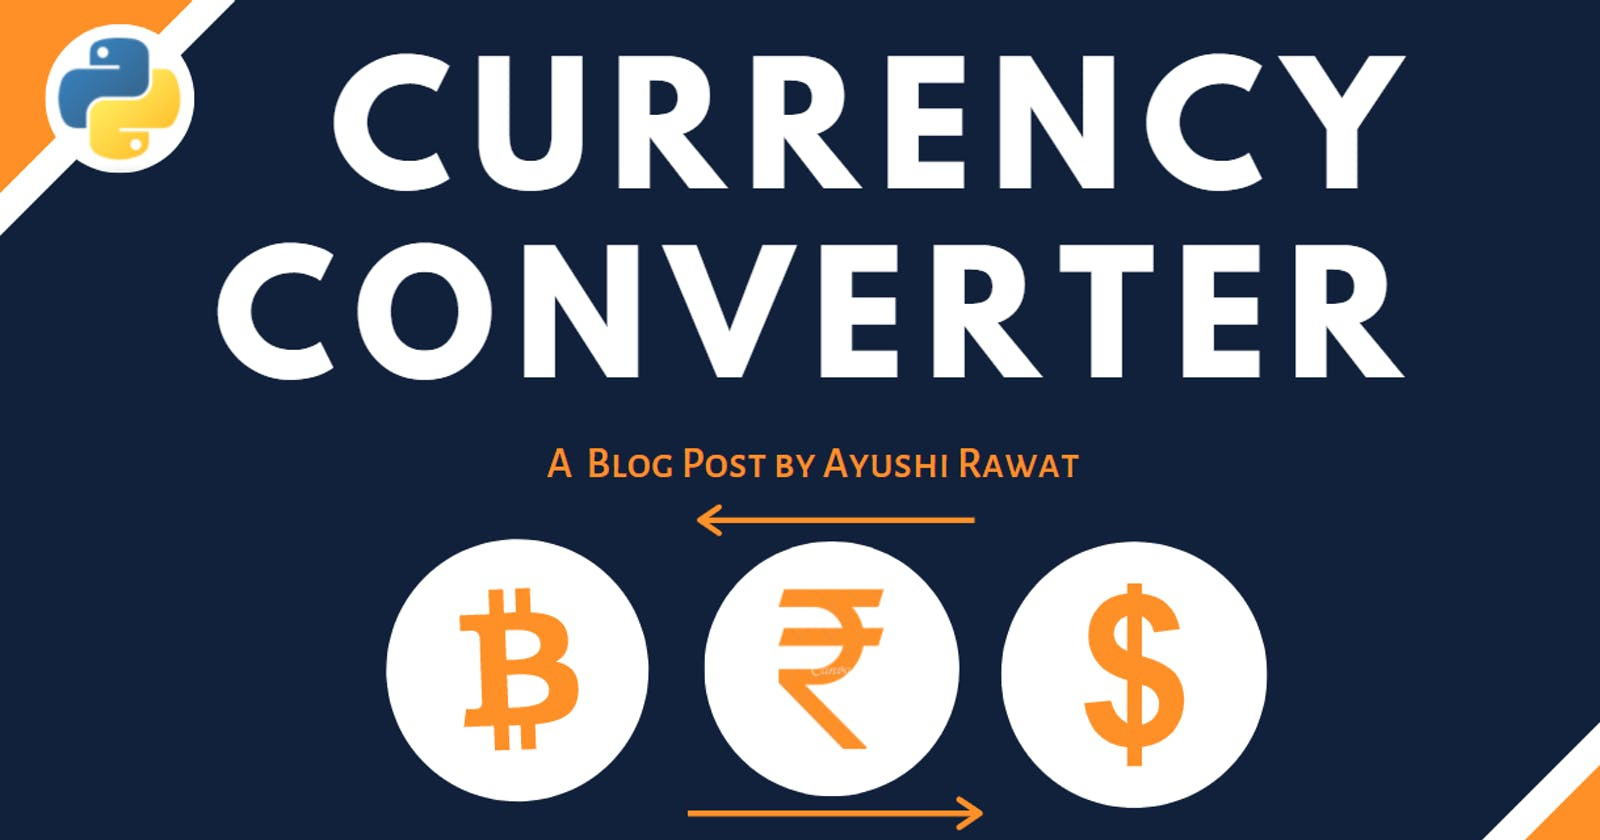 Currency Converter using Python